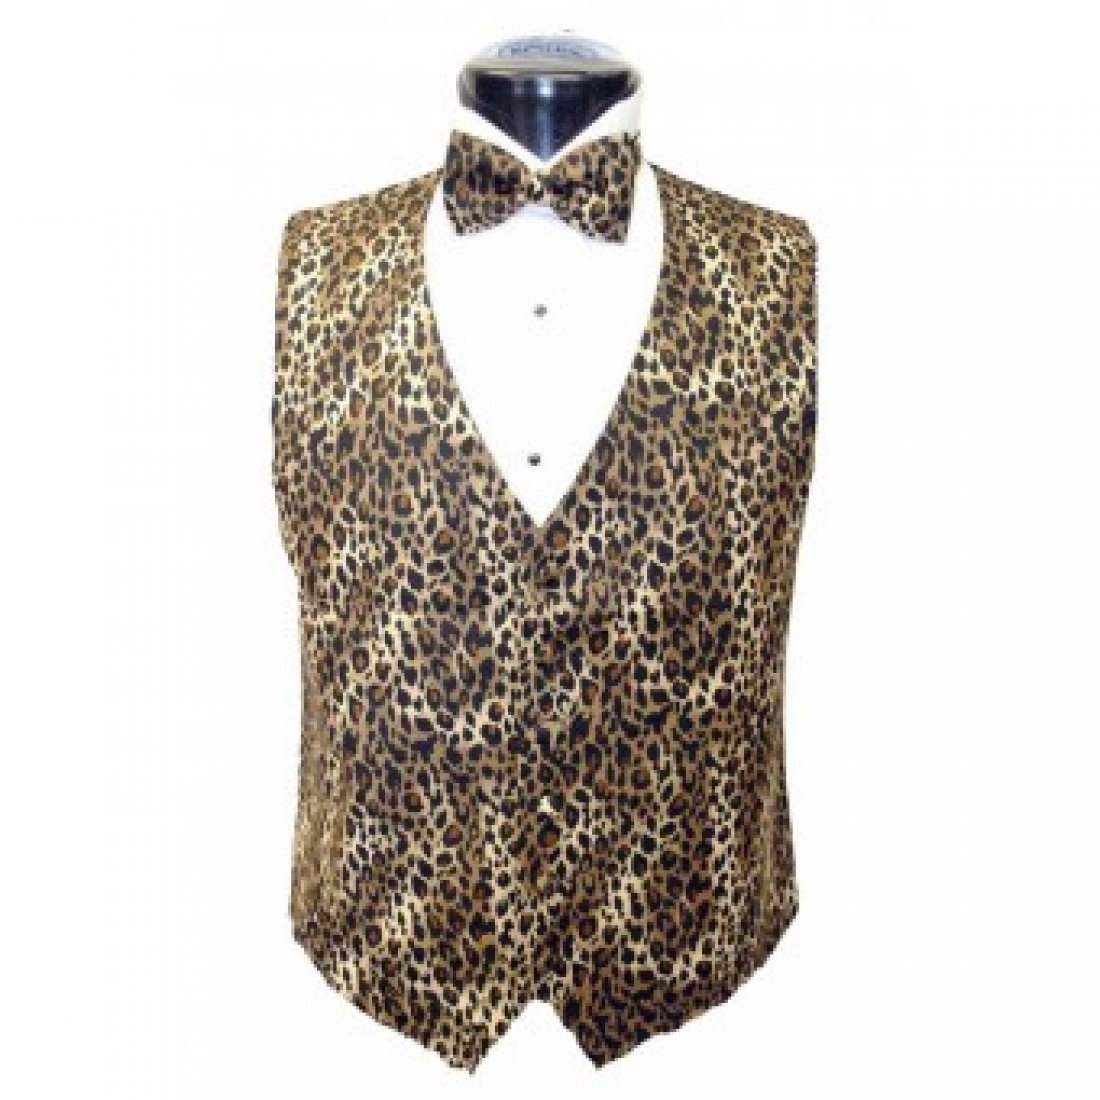 Brown Leopard Tuxedo Vest and Bow Tie Size Large